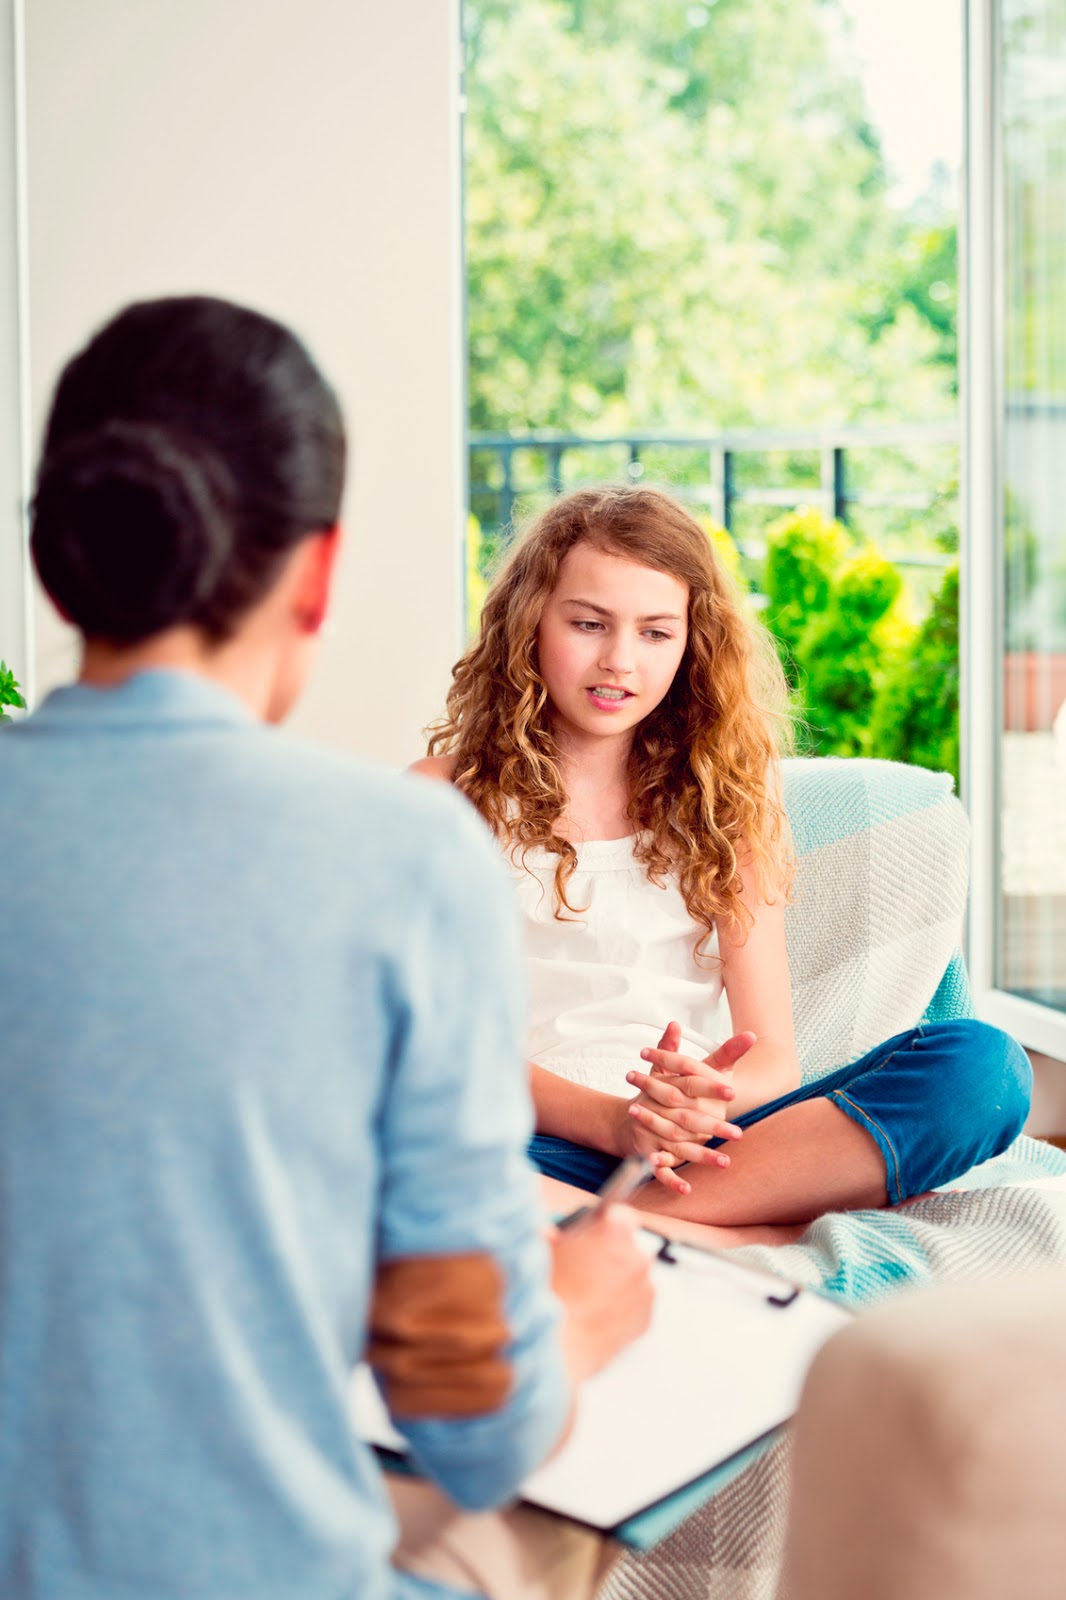 Adolescents With Depression Found to Benefit From Collaborative Care Program